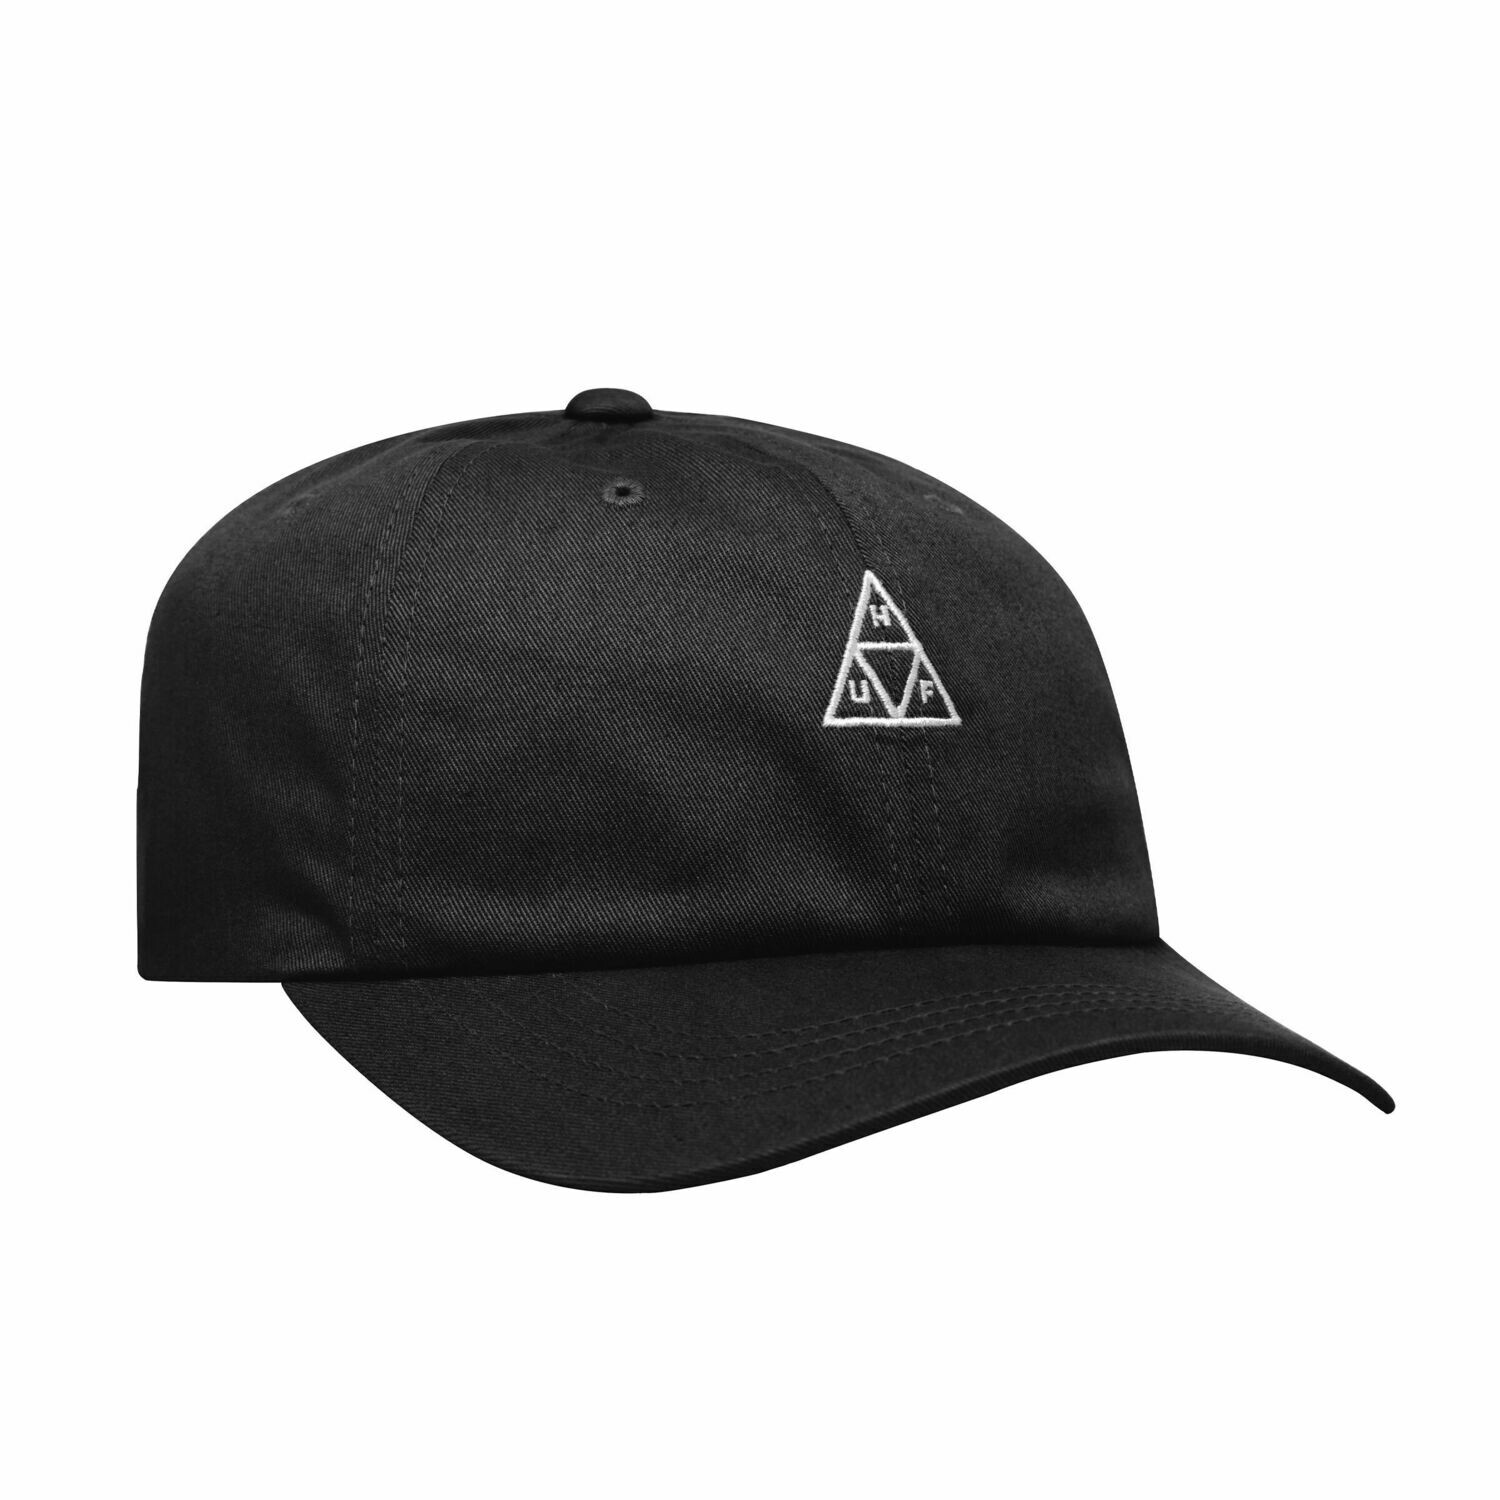 ESSENTIALS-TT-LOGO-CV-HAT